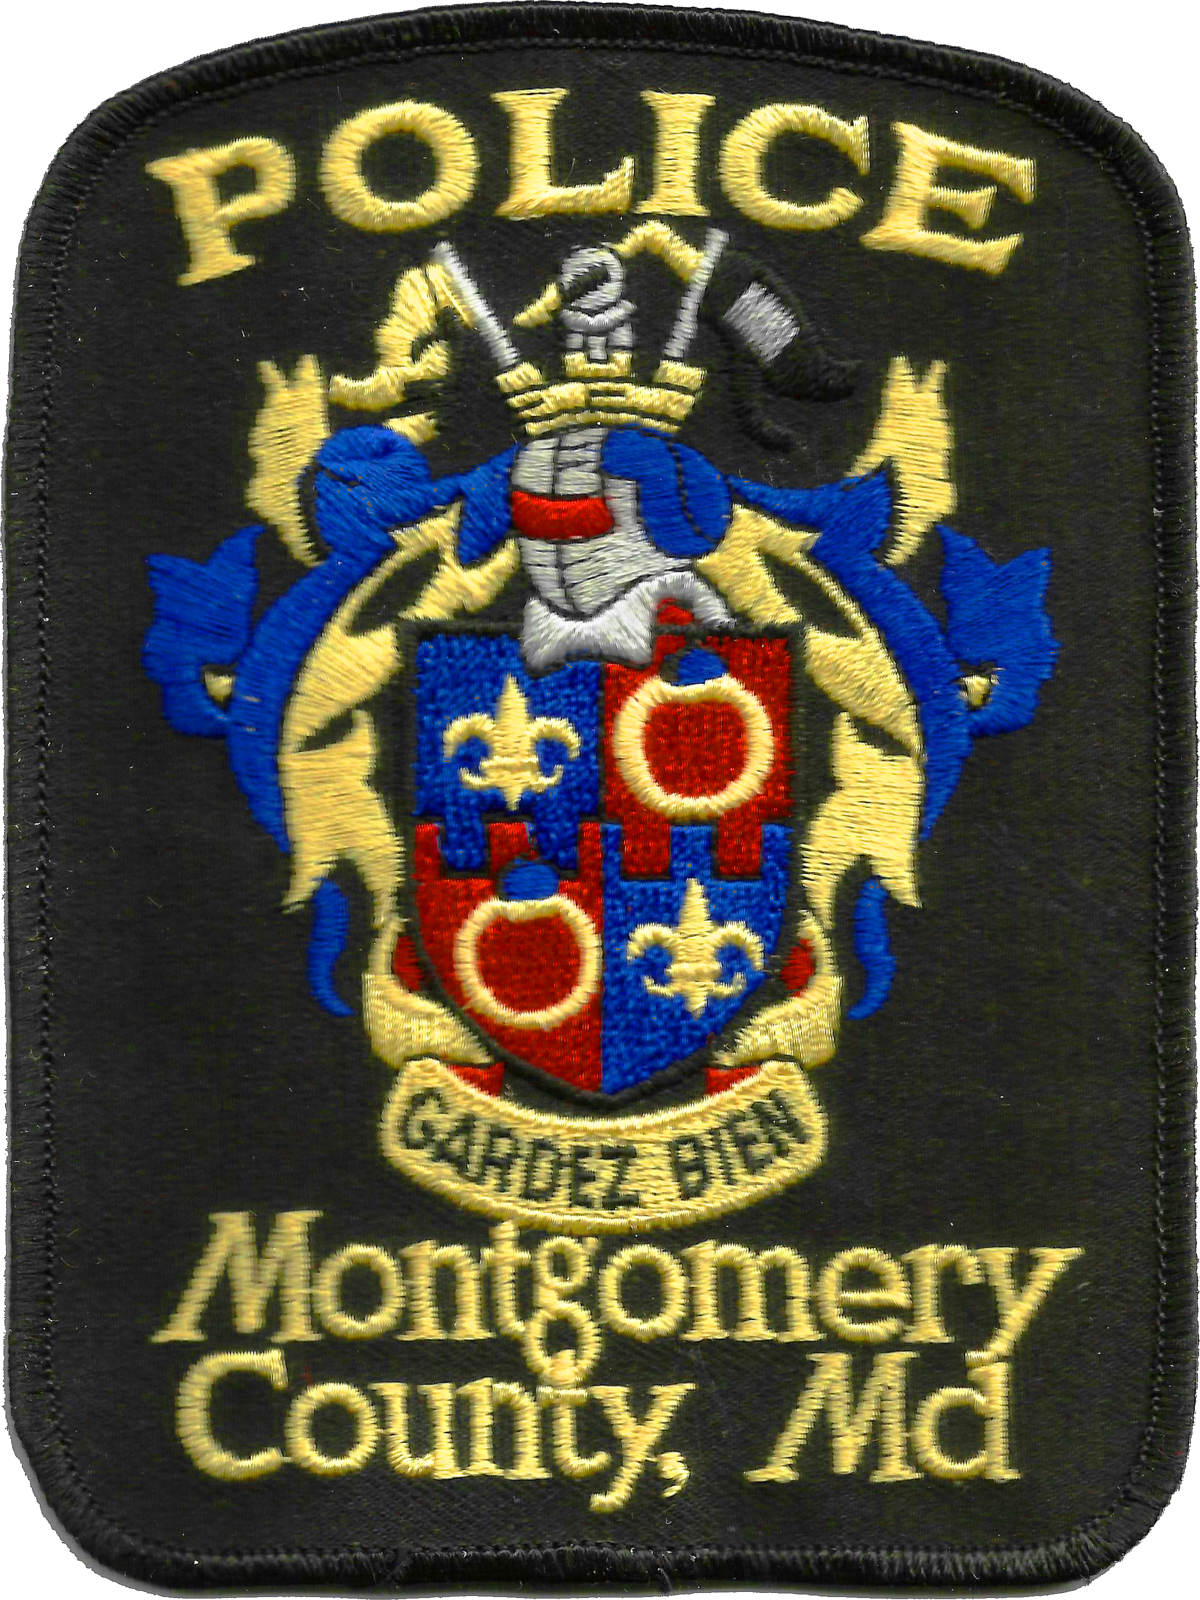 Montgomery County Police Department - Wikipedia